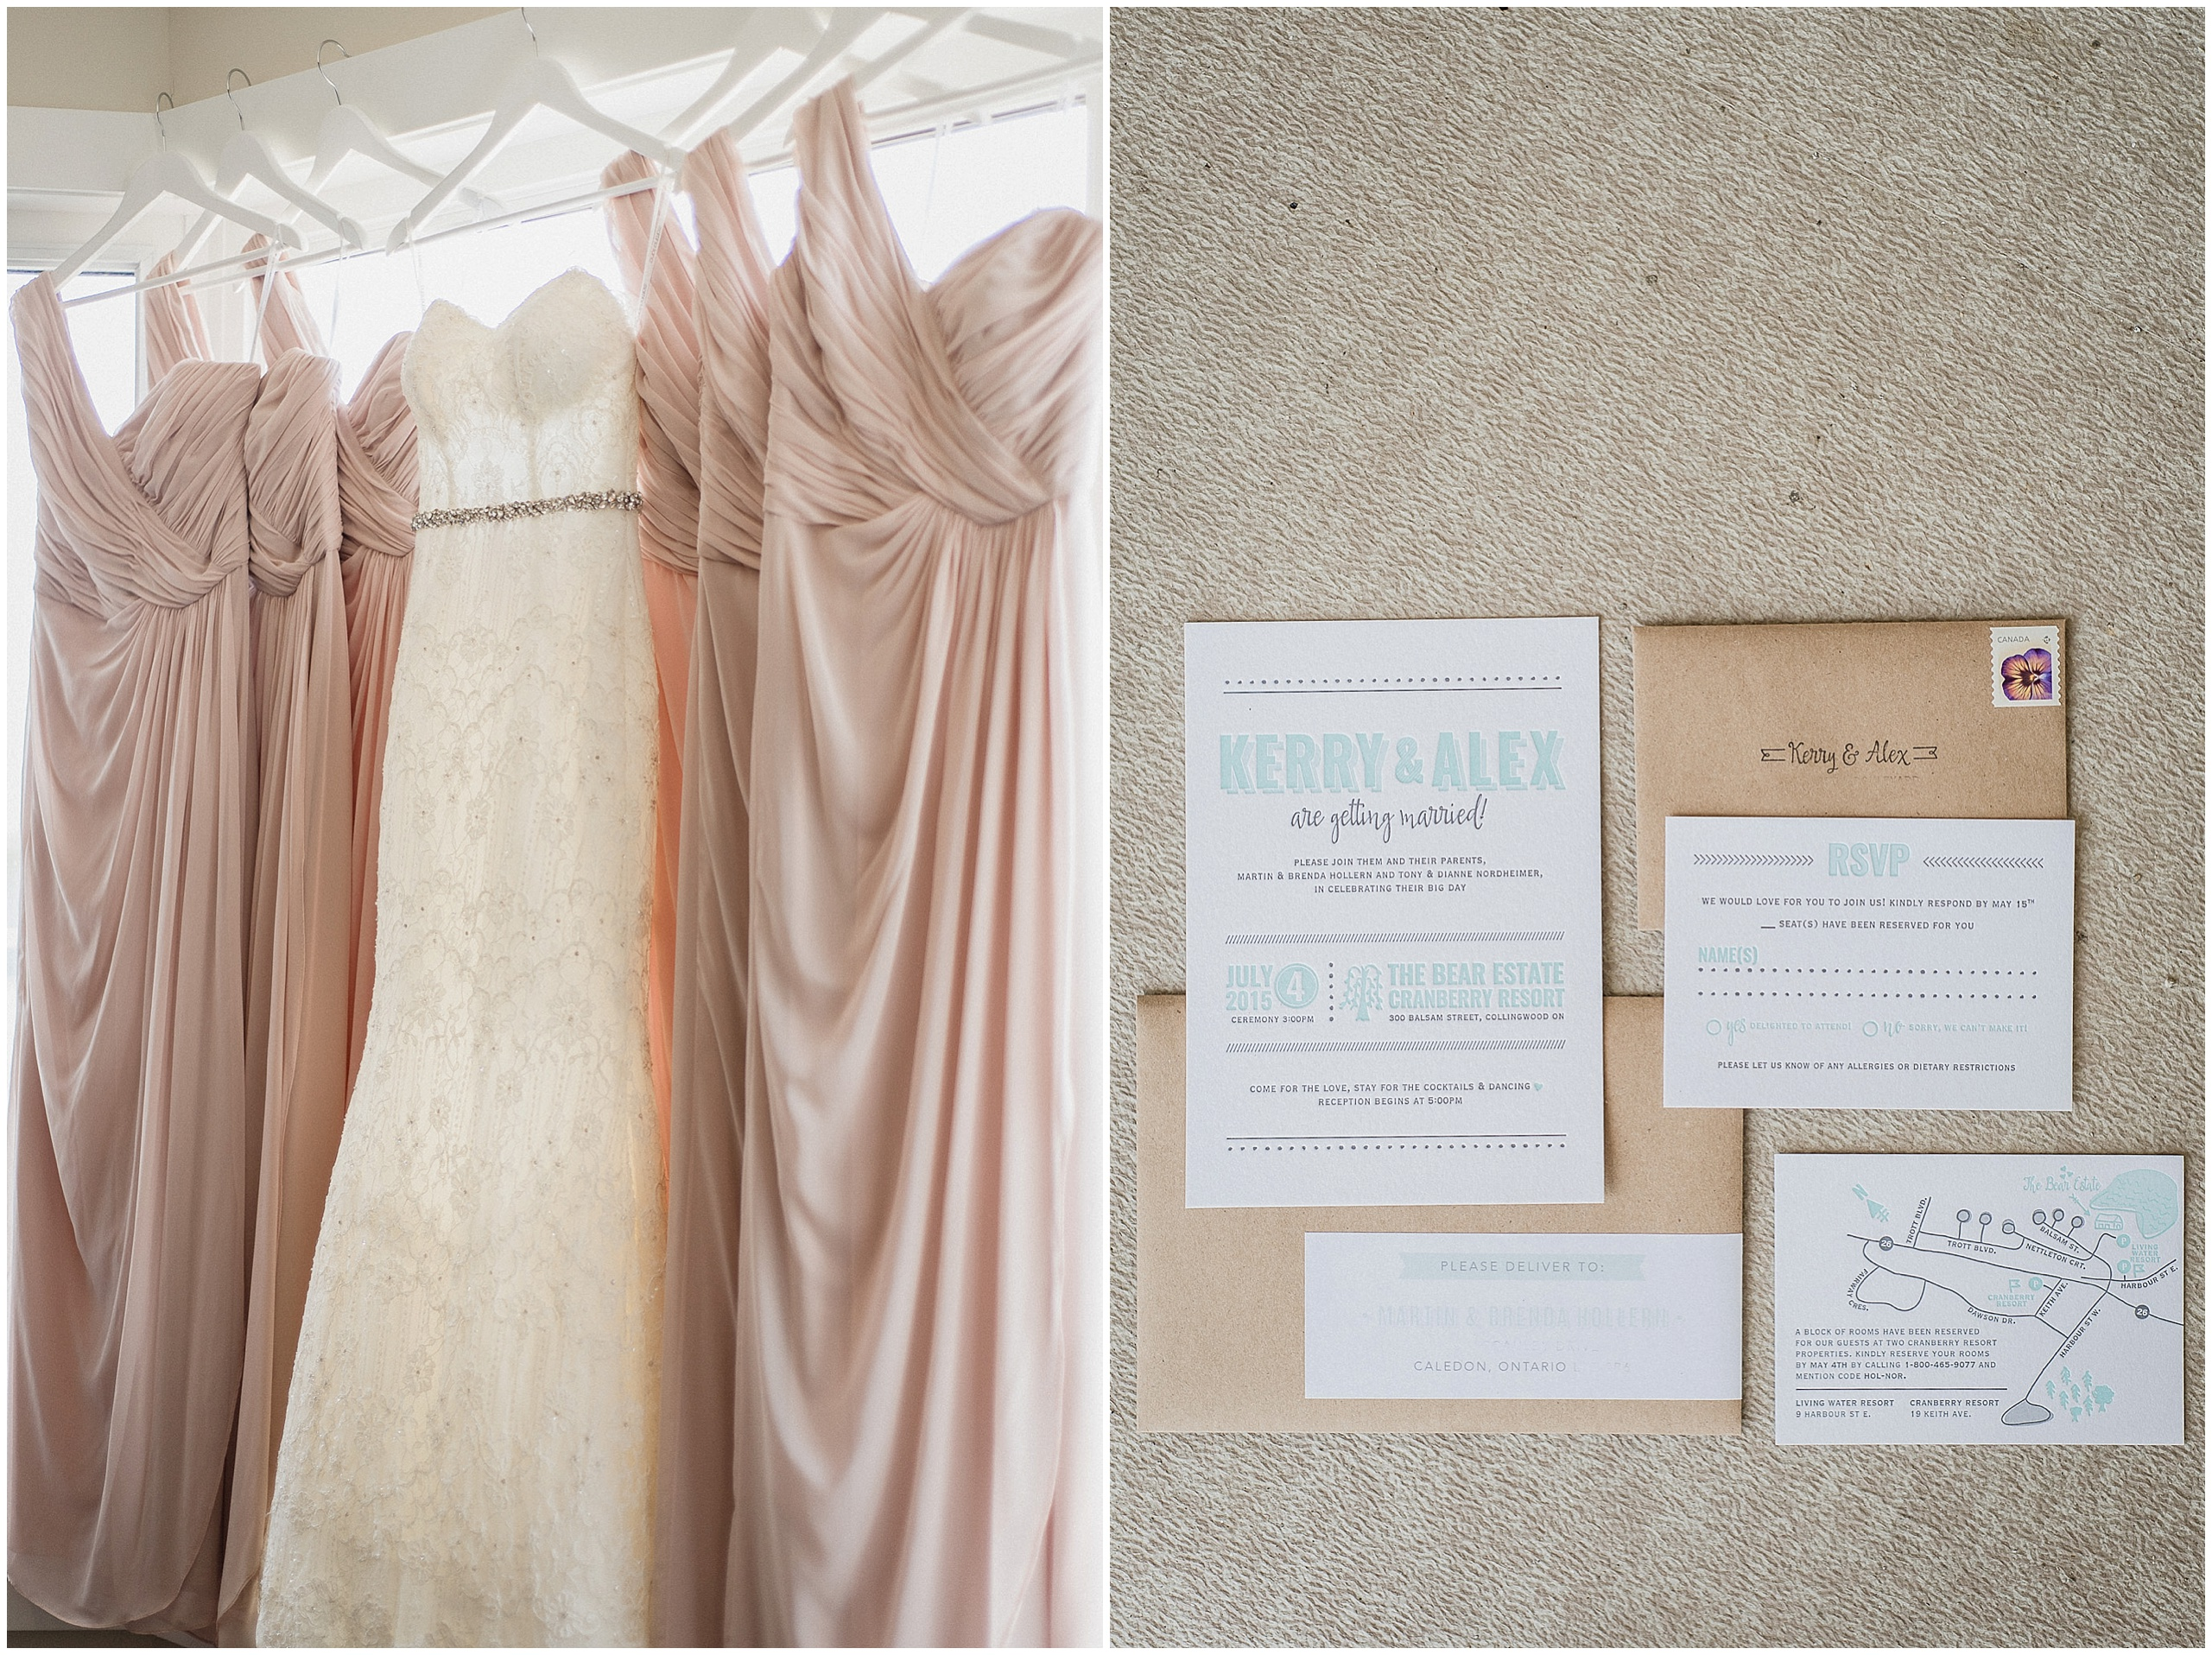 Wedding Gown hanging with one shouldered, full length blush bridesmaid dresses. Wedding Invitations by Frou Frou House. Photographed by Jenn Kavanagh Photography